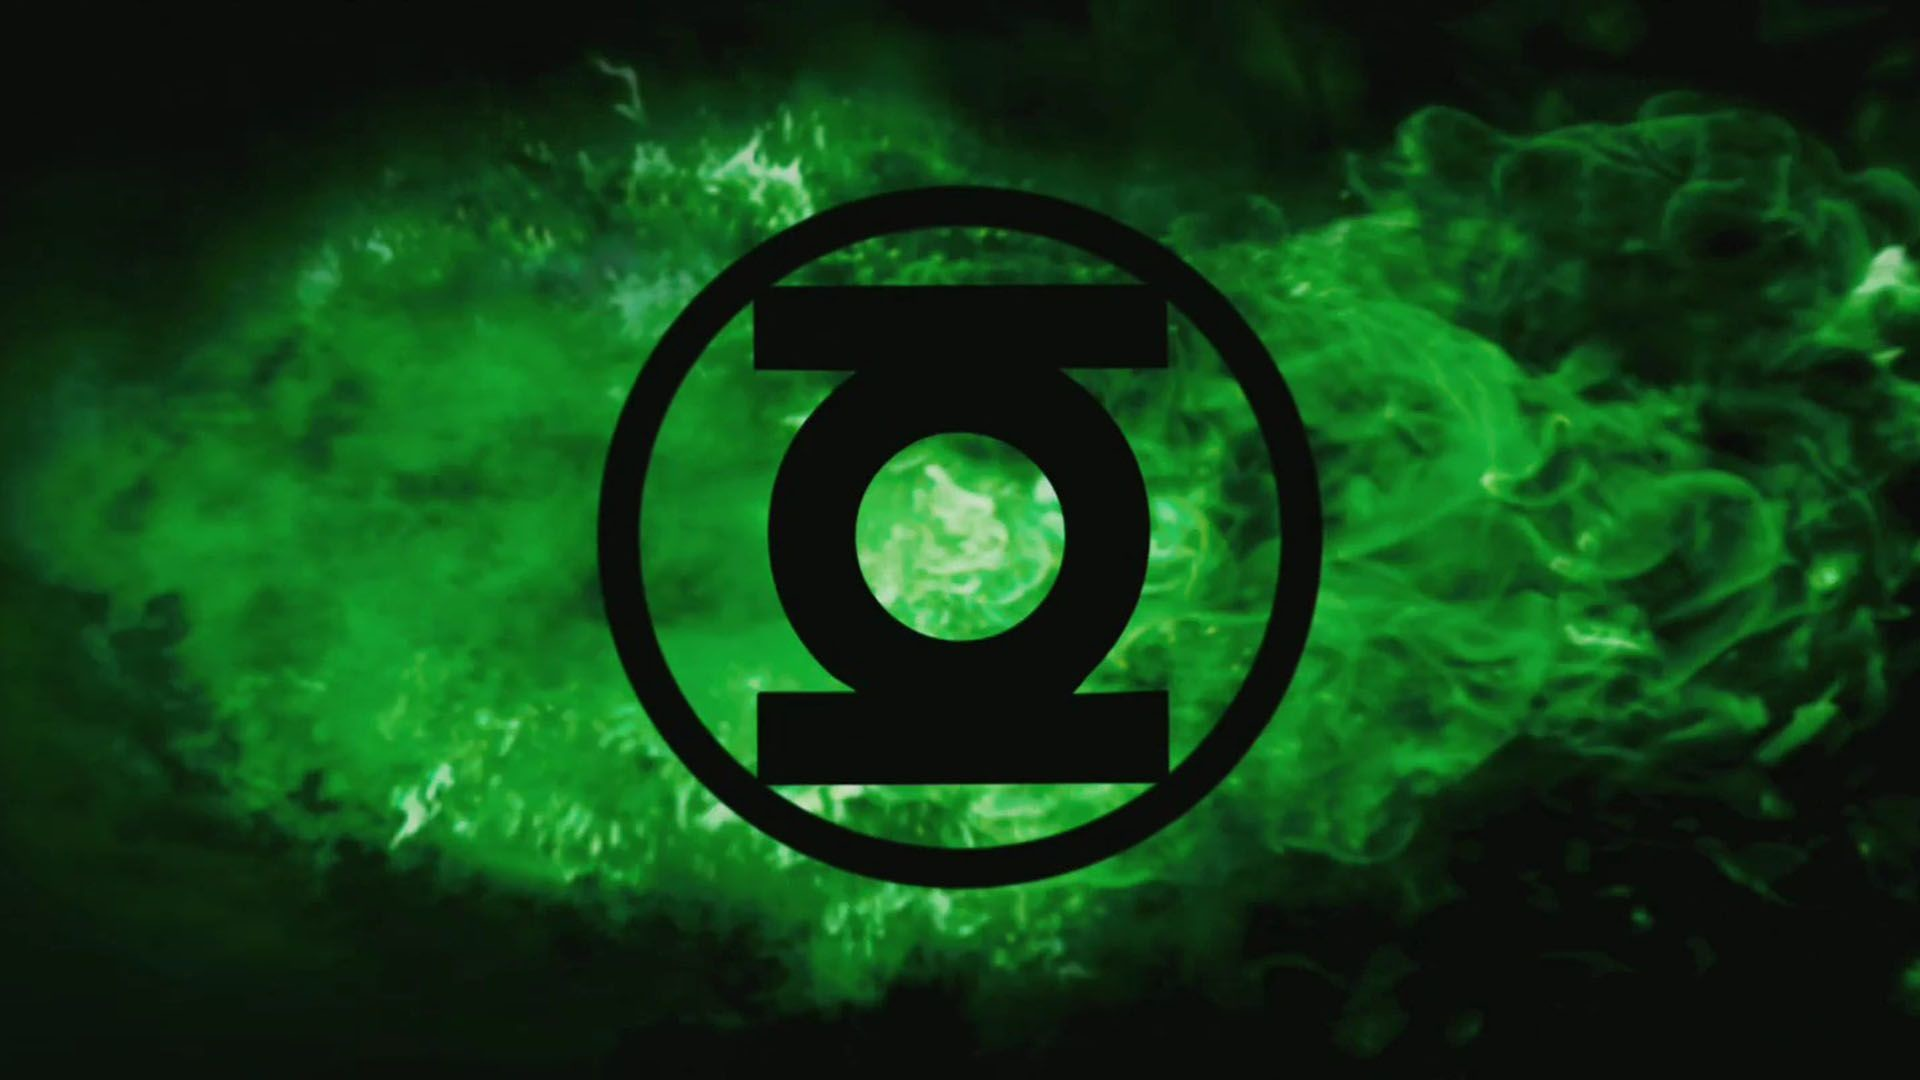 Green Lantern logo Cool Backgrounds Wallpapers 179 – HD Wallpapers .